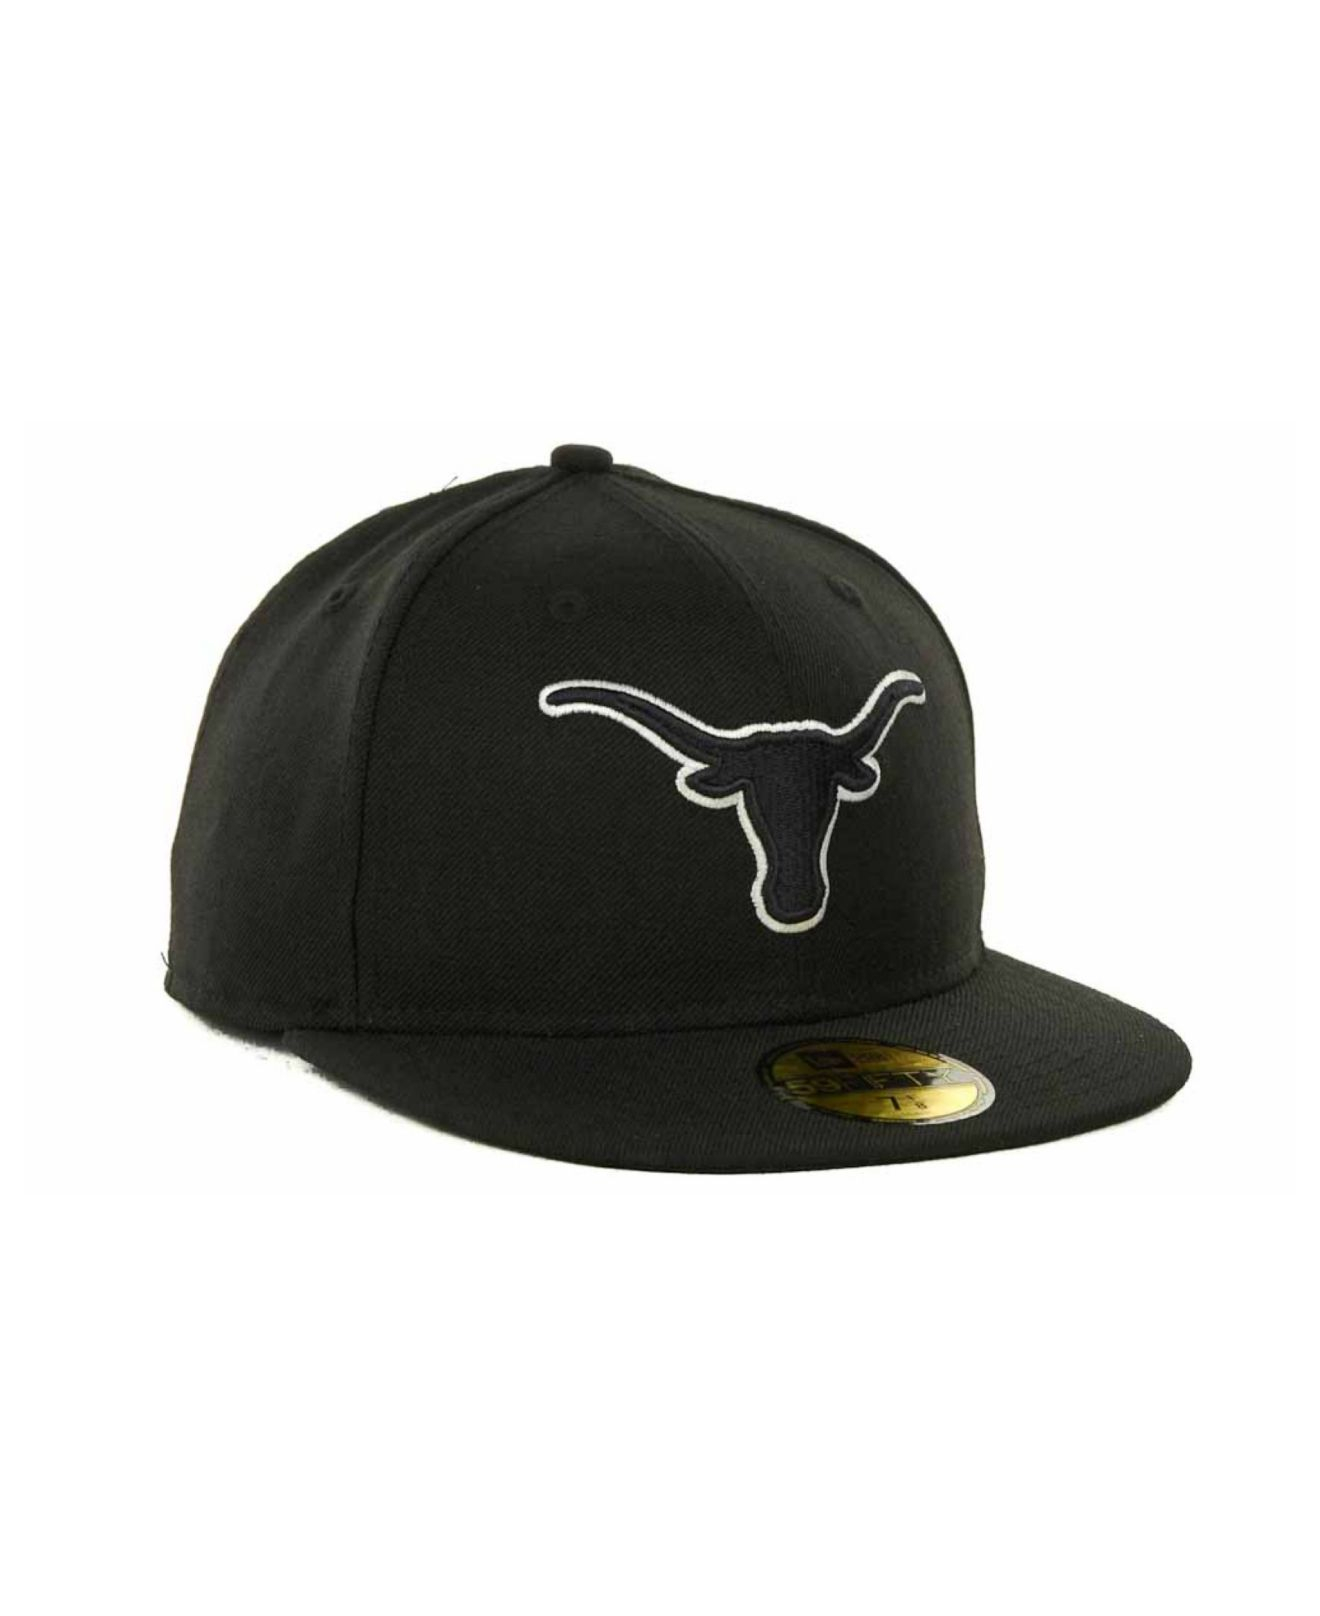 reputable site 54d9d 637a6 ... store lyst ktz texas longhorns black on black with white 59fifty cap in  1704d 97149